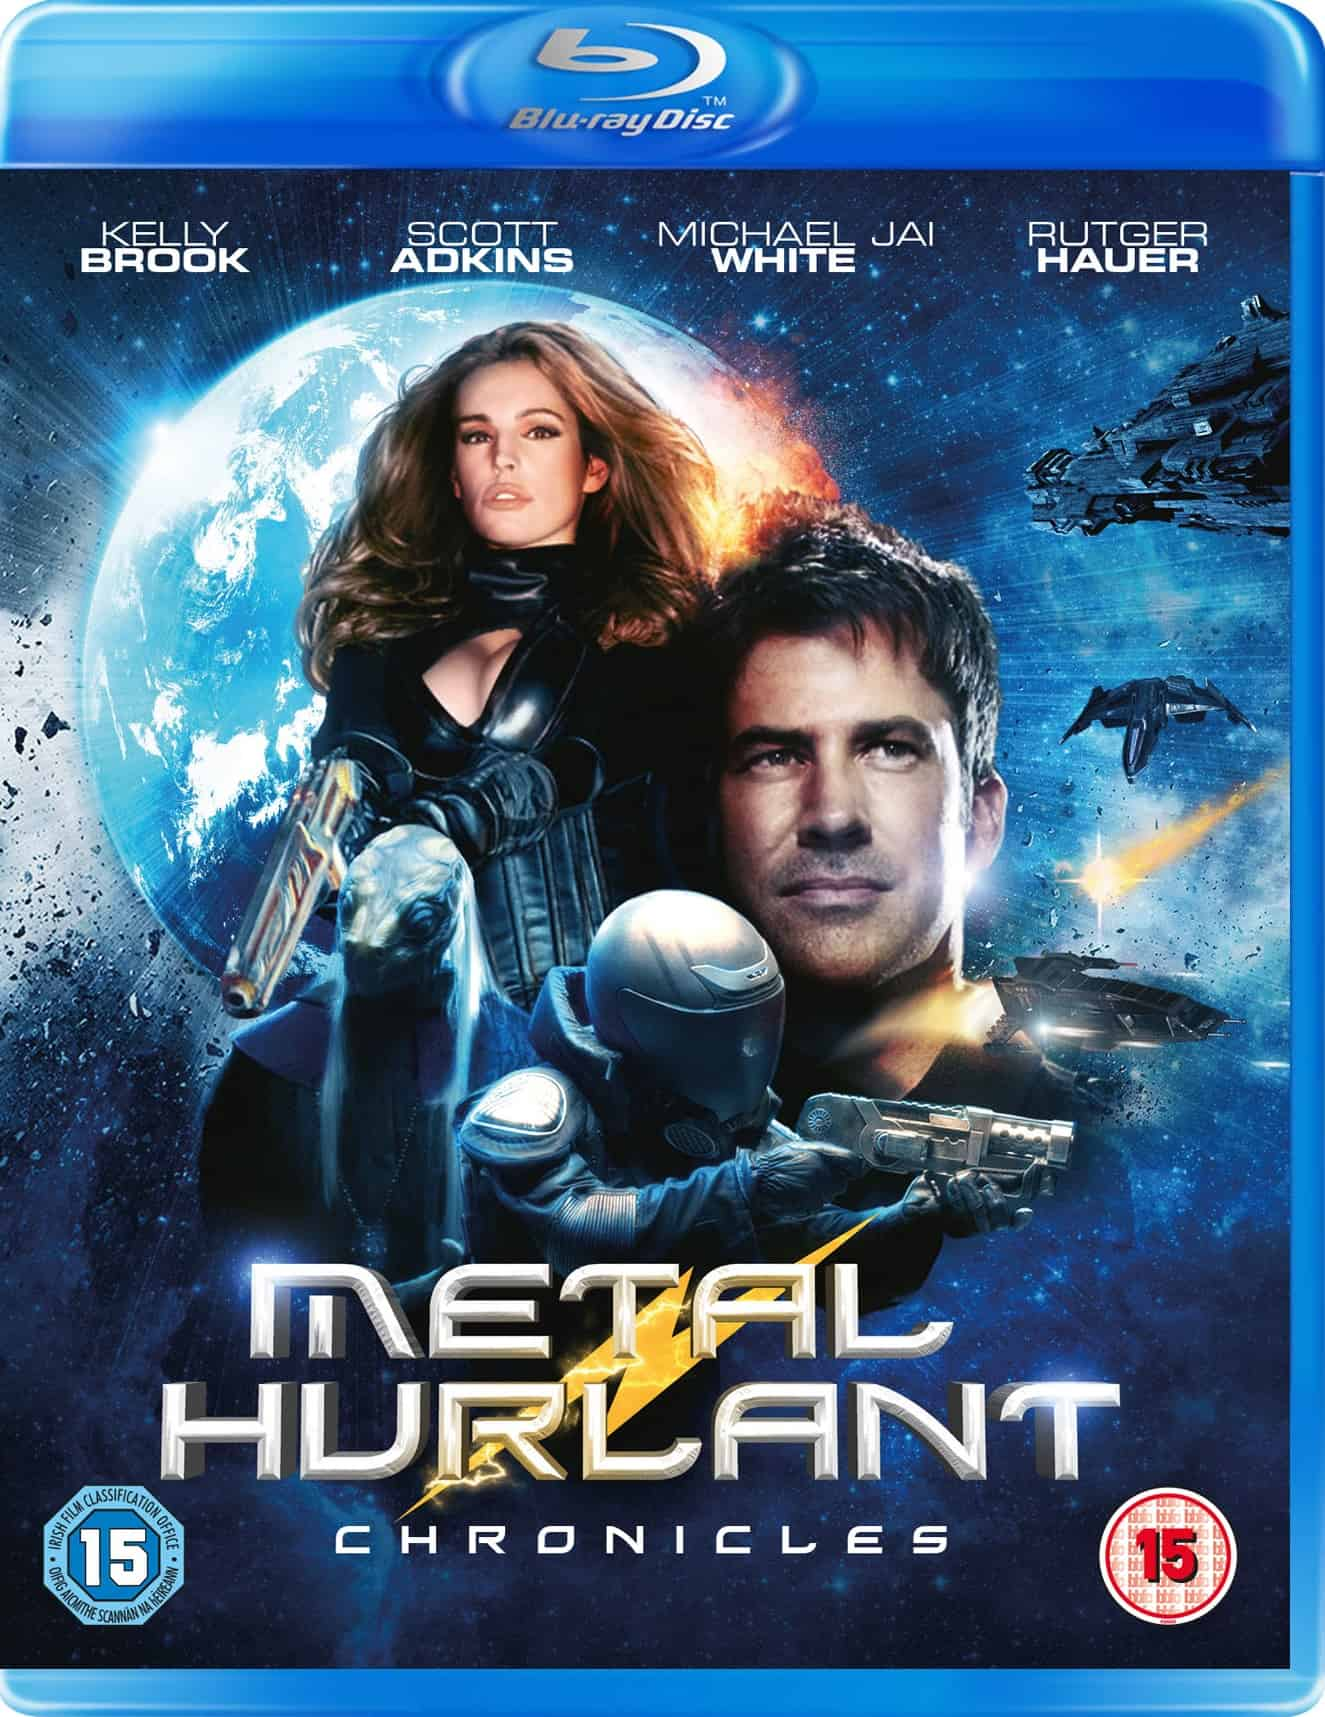 Metal Hurlant Chronicles UK Blu-ray Sleeve